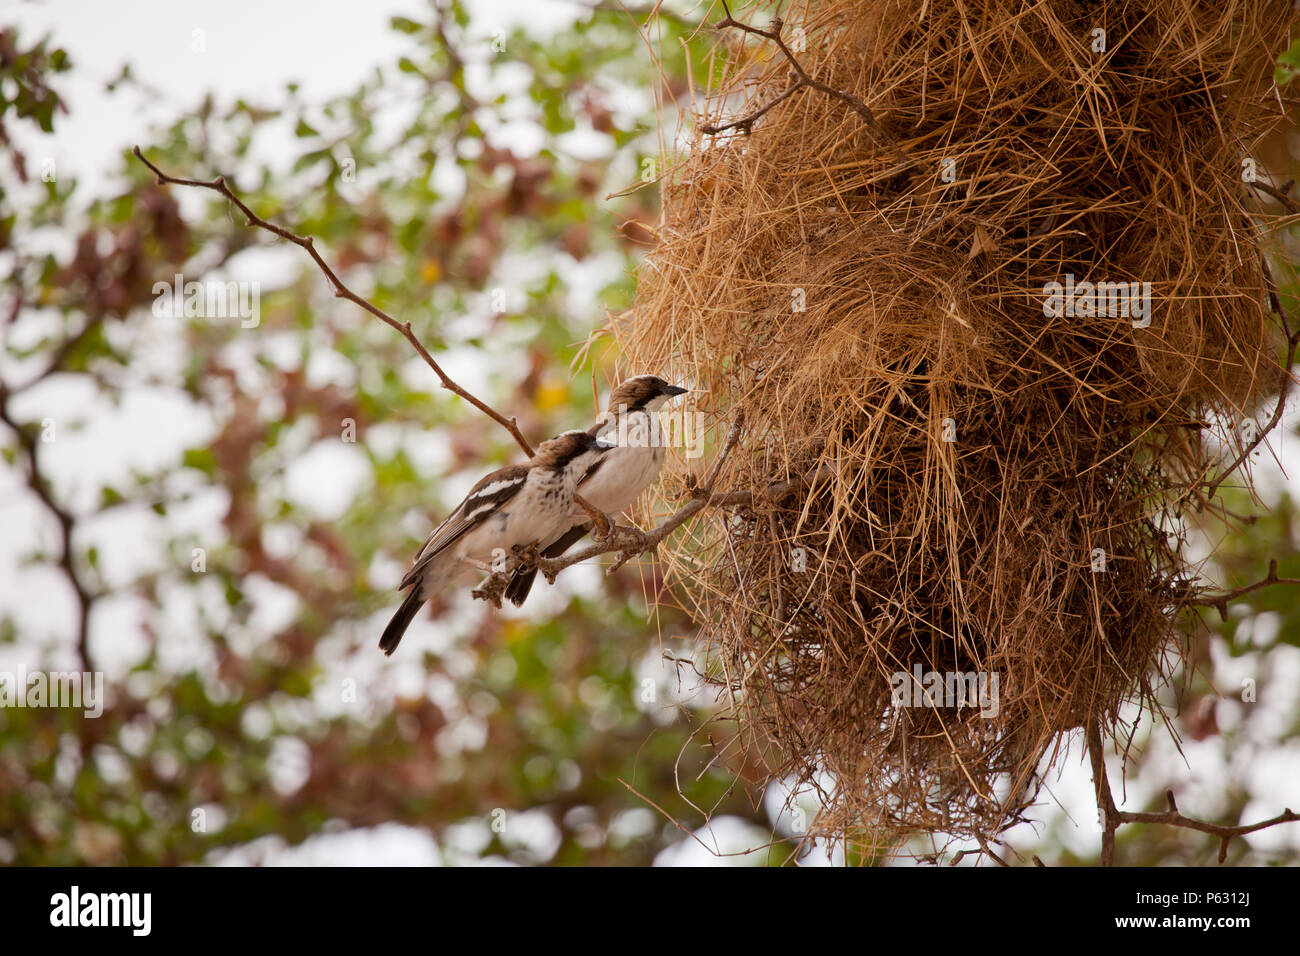 A pair of white browed sparrow weavers outside a nest, Selous Game Reserve, Tanzania - Stock Image